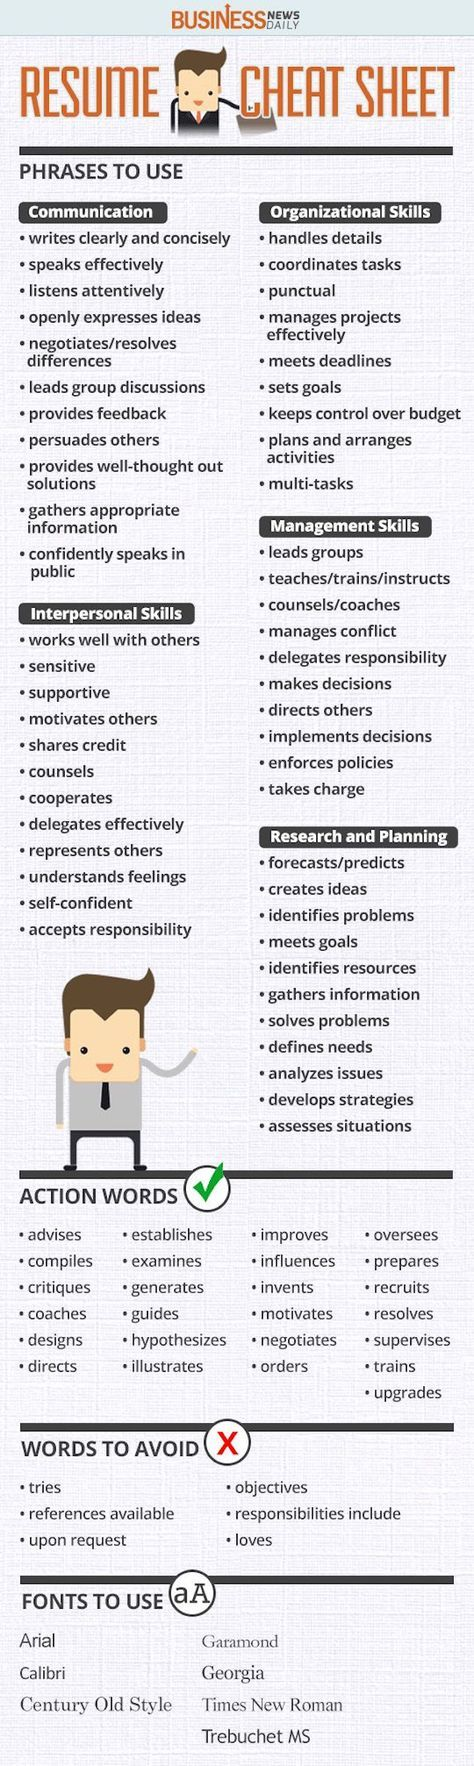 here s a guide to the words you should use on a resumé to make